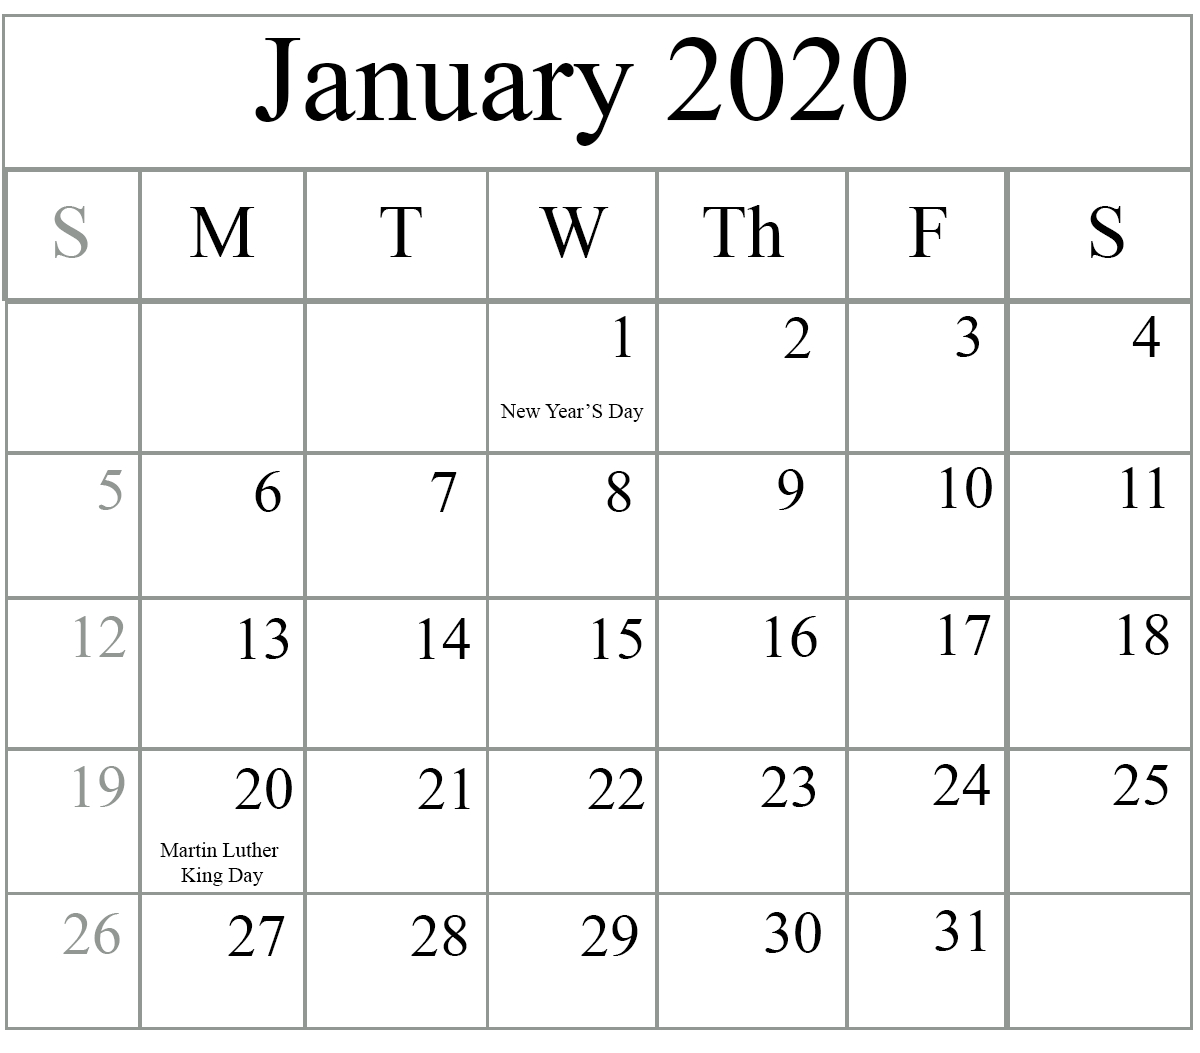 Free January 2020 Printable Calendar In Pdf, Excel & Word with 2020 Calendar I Can Edit